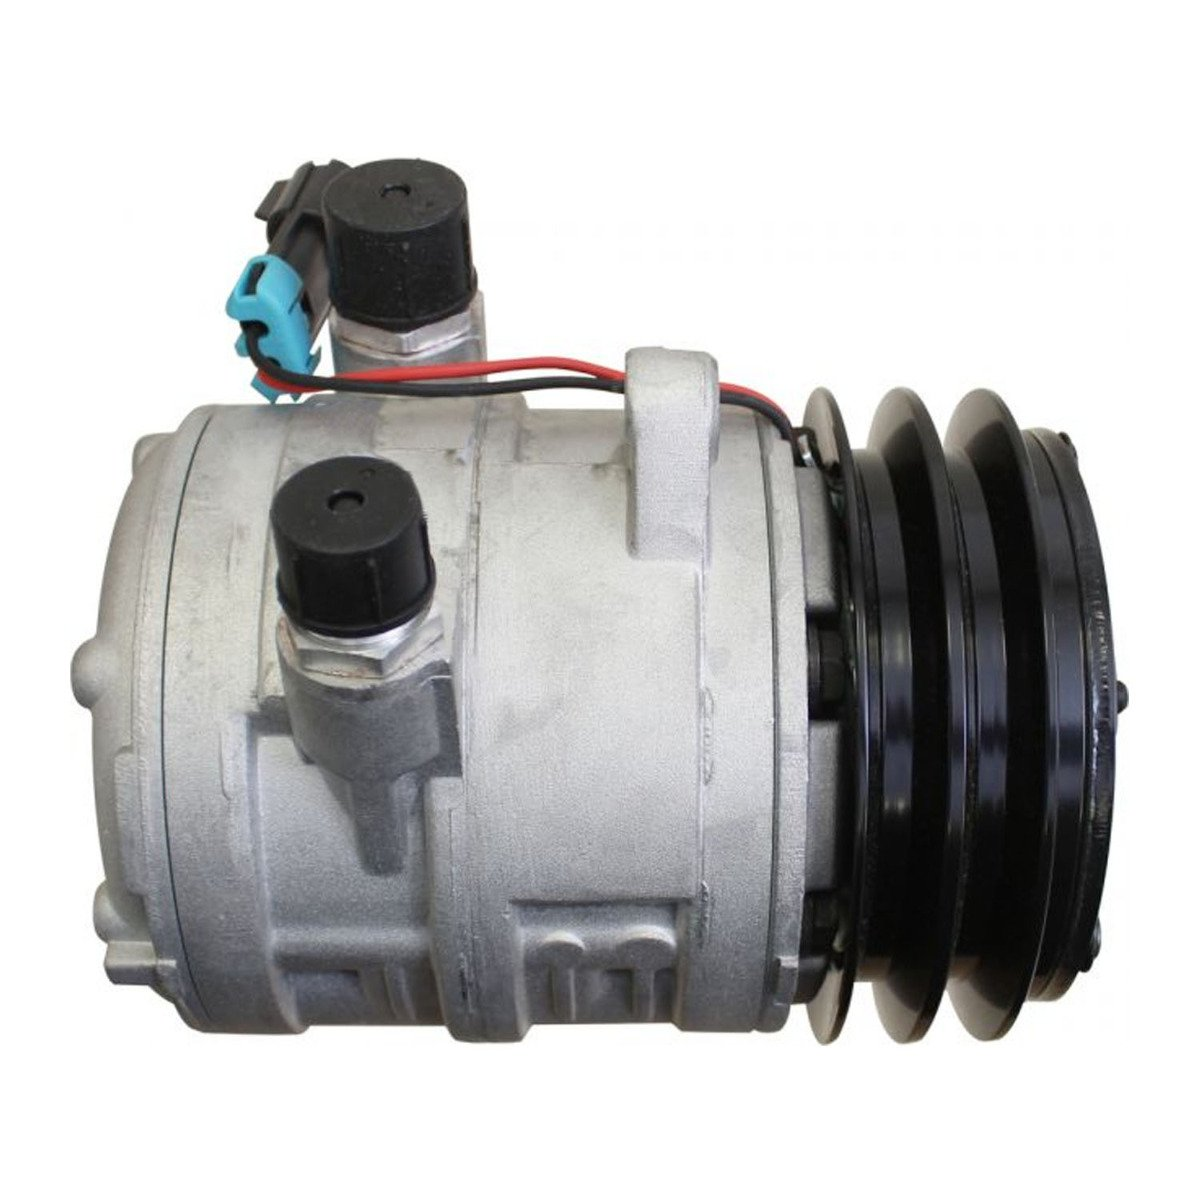 A/C Air Conditioning Compressor 6733655 Compatible with Bobcat Skid Steer Loader 773 863 864 873 883 963 A220 A300 T180 T190 T200 S330